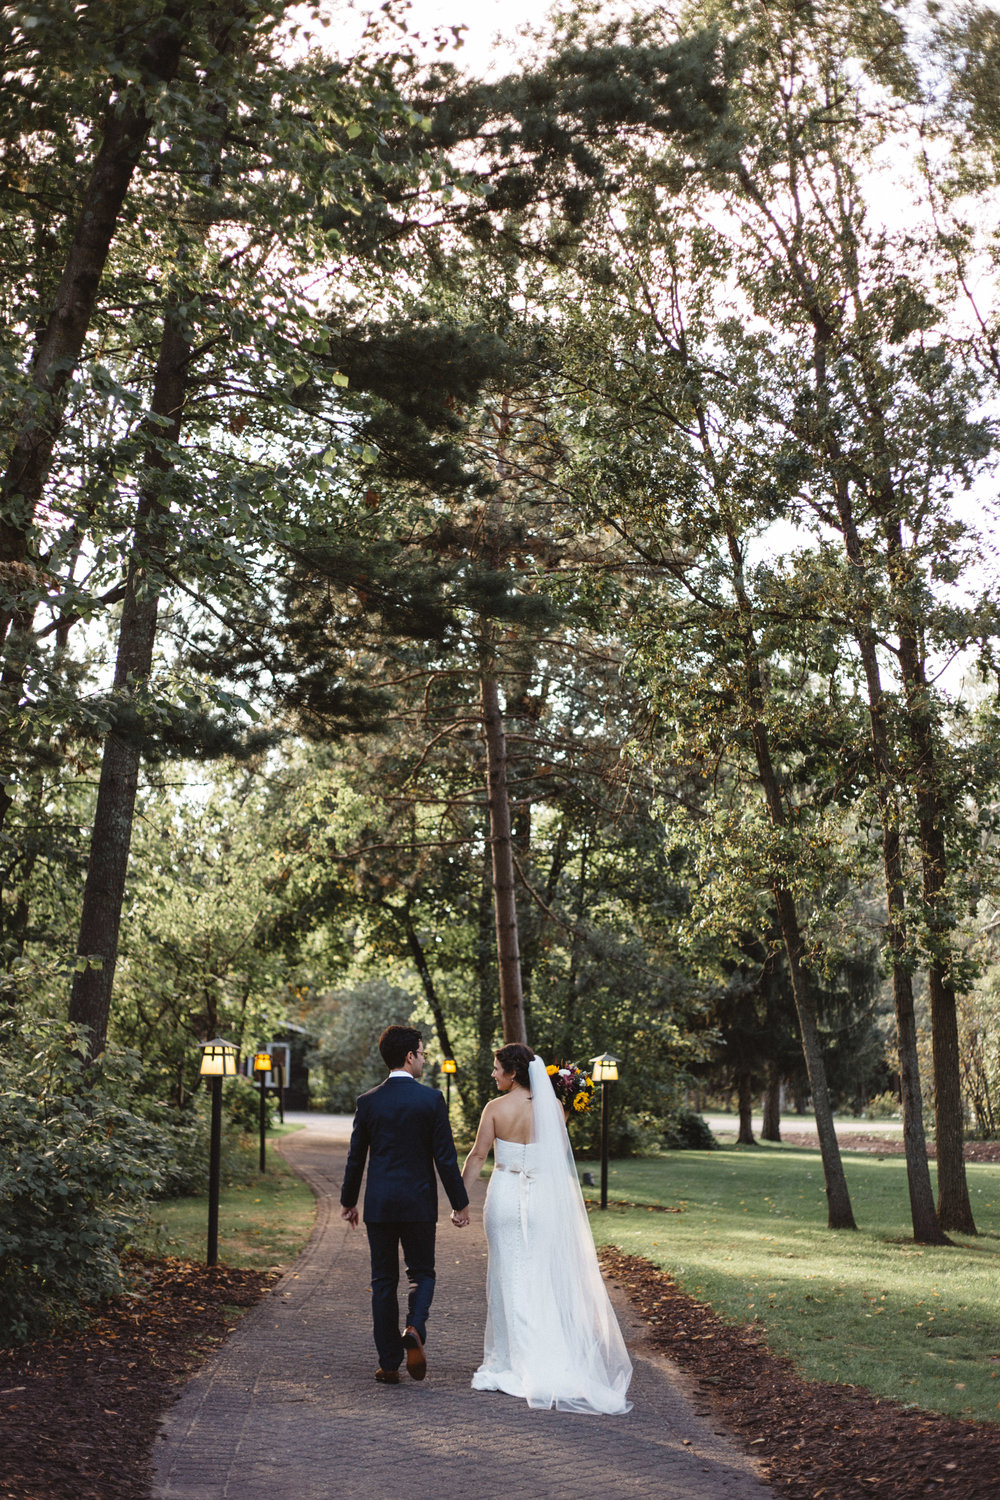 Summer wedding at Grand View Lodge, photography by Britt DeZeeuw